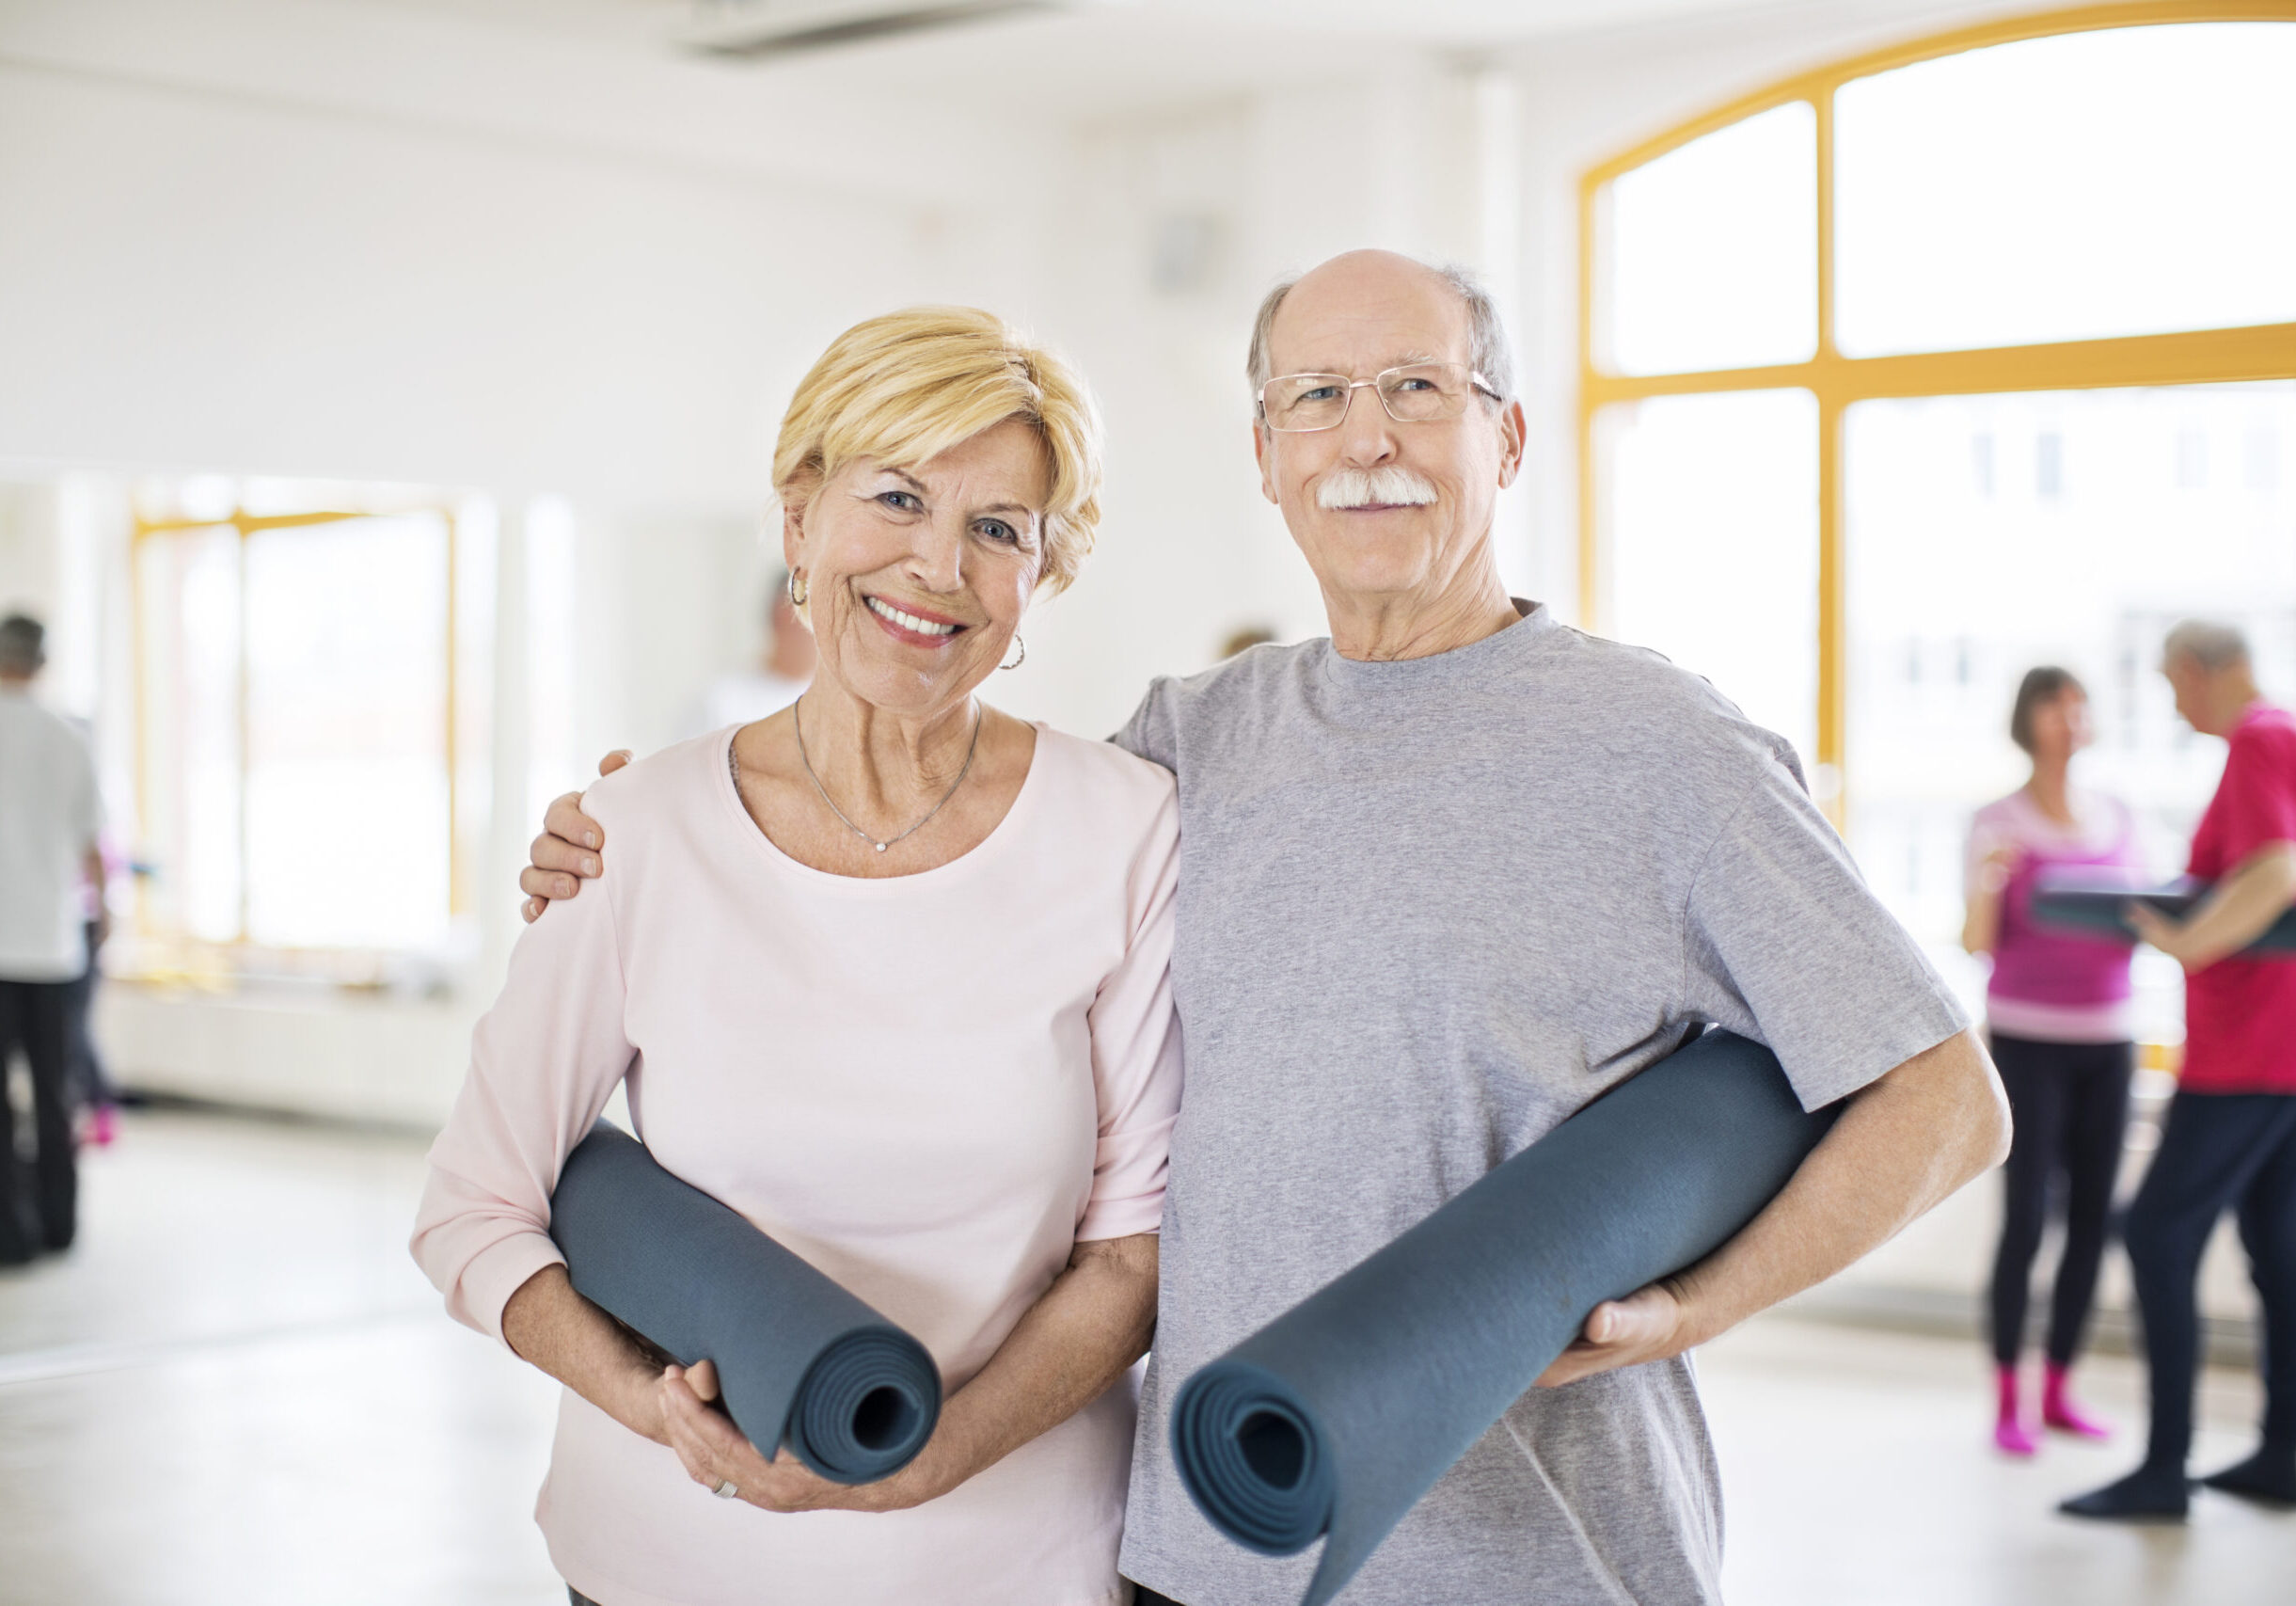 Portrait of happy senior couple holding rolled up exercise mats. Smiling man and woman are standing in yoga class. They are in sportswear.